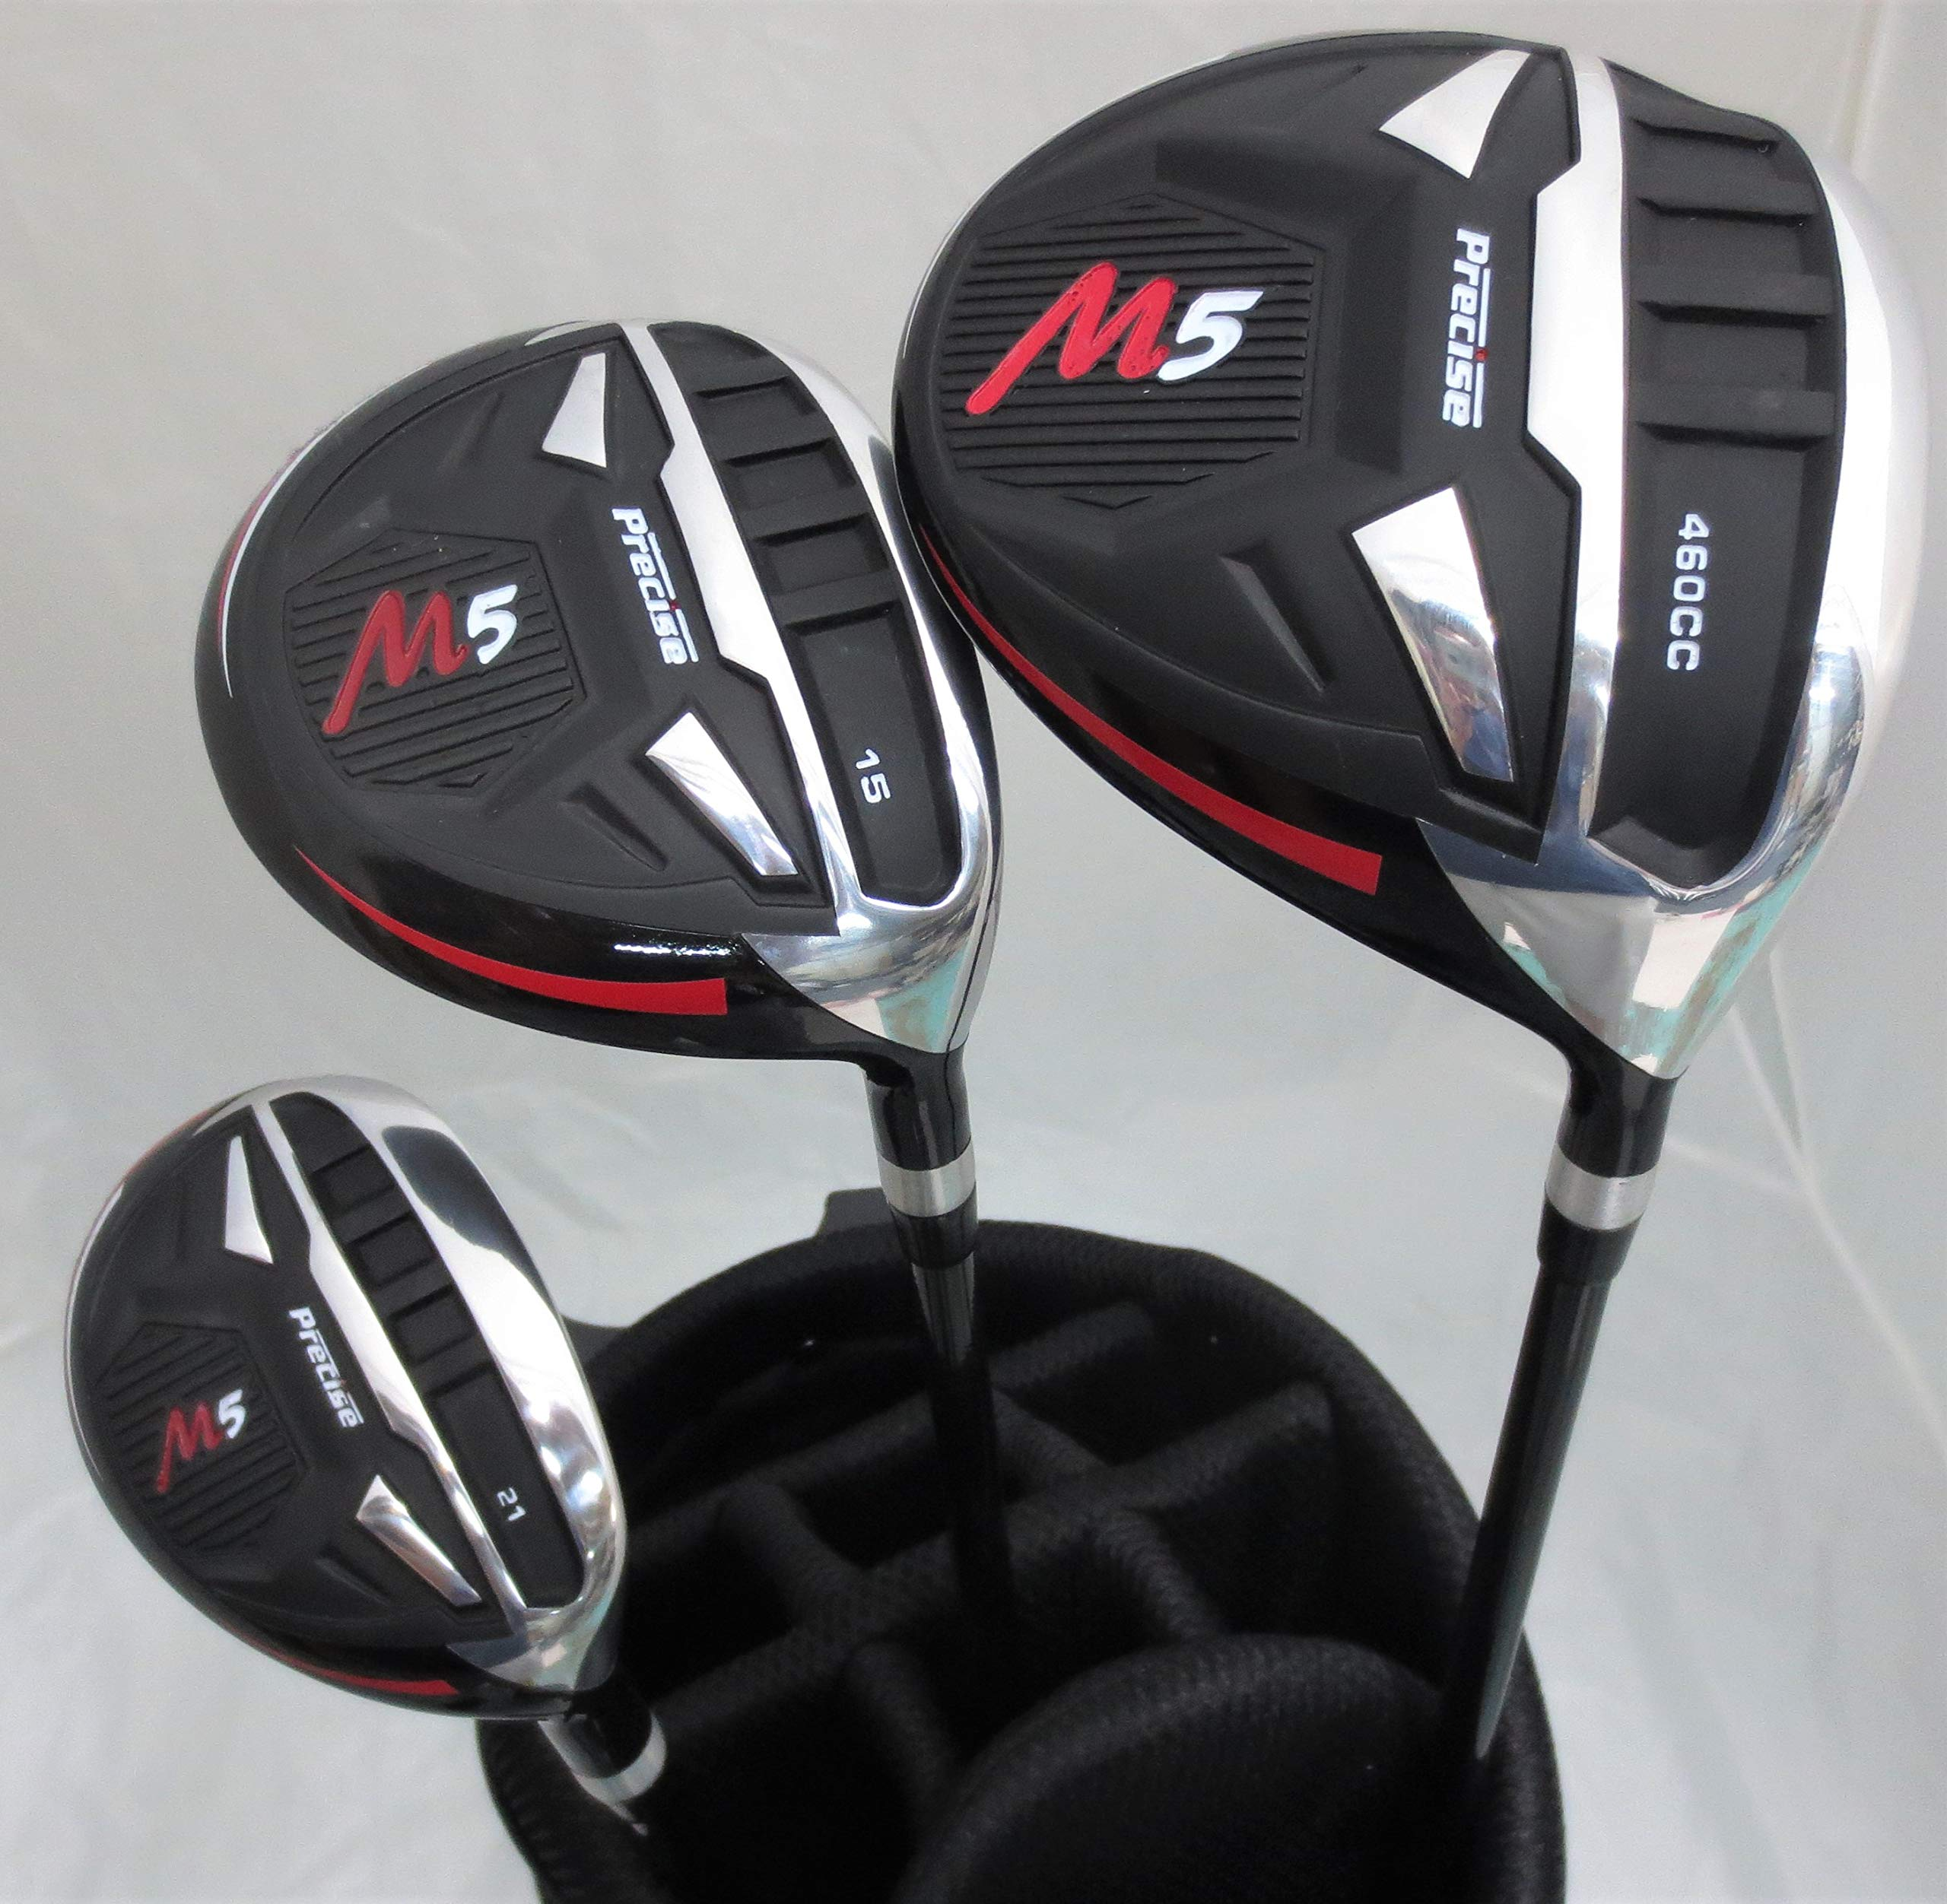 Tartan Sports New Teen Golf Club Set Complete with Stand Bag for Teenagers Ages 13-16 Driver, Wood Hybrid, Irons Putter by Tartan Sports (Image #3)